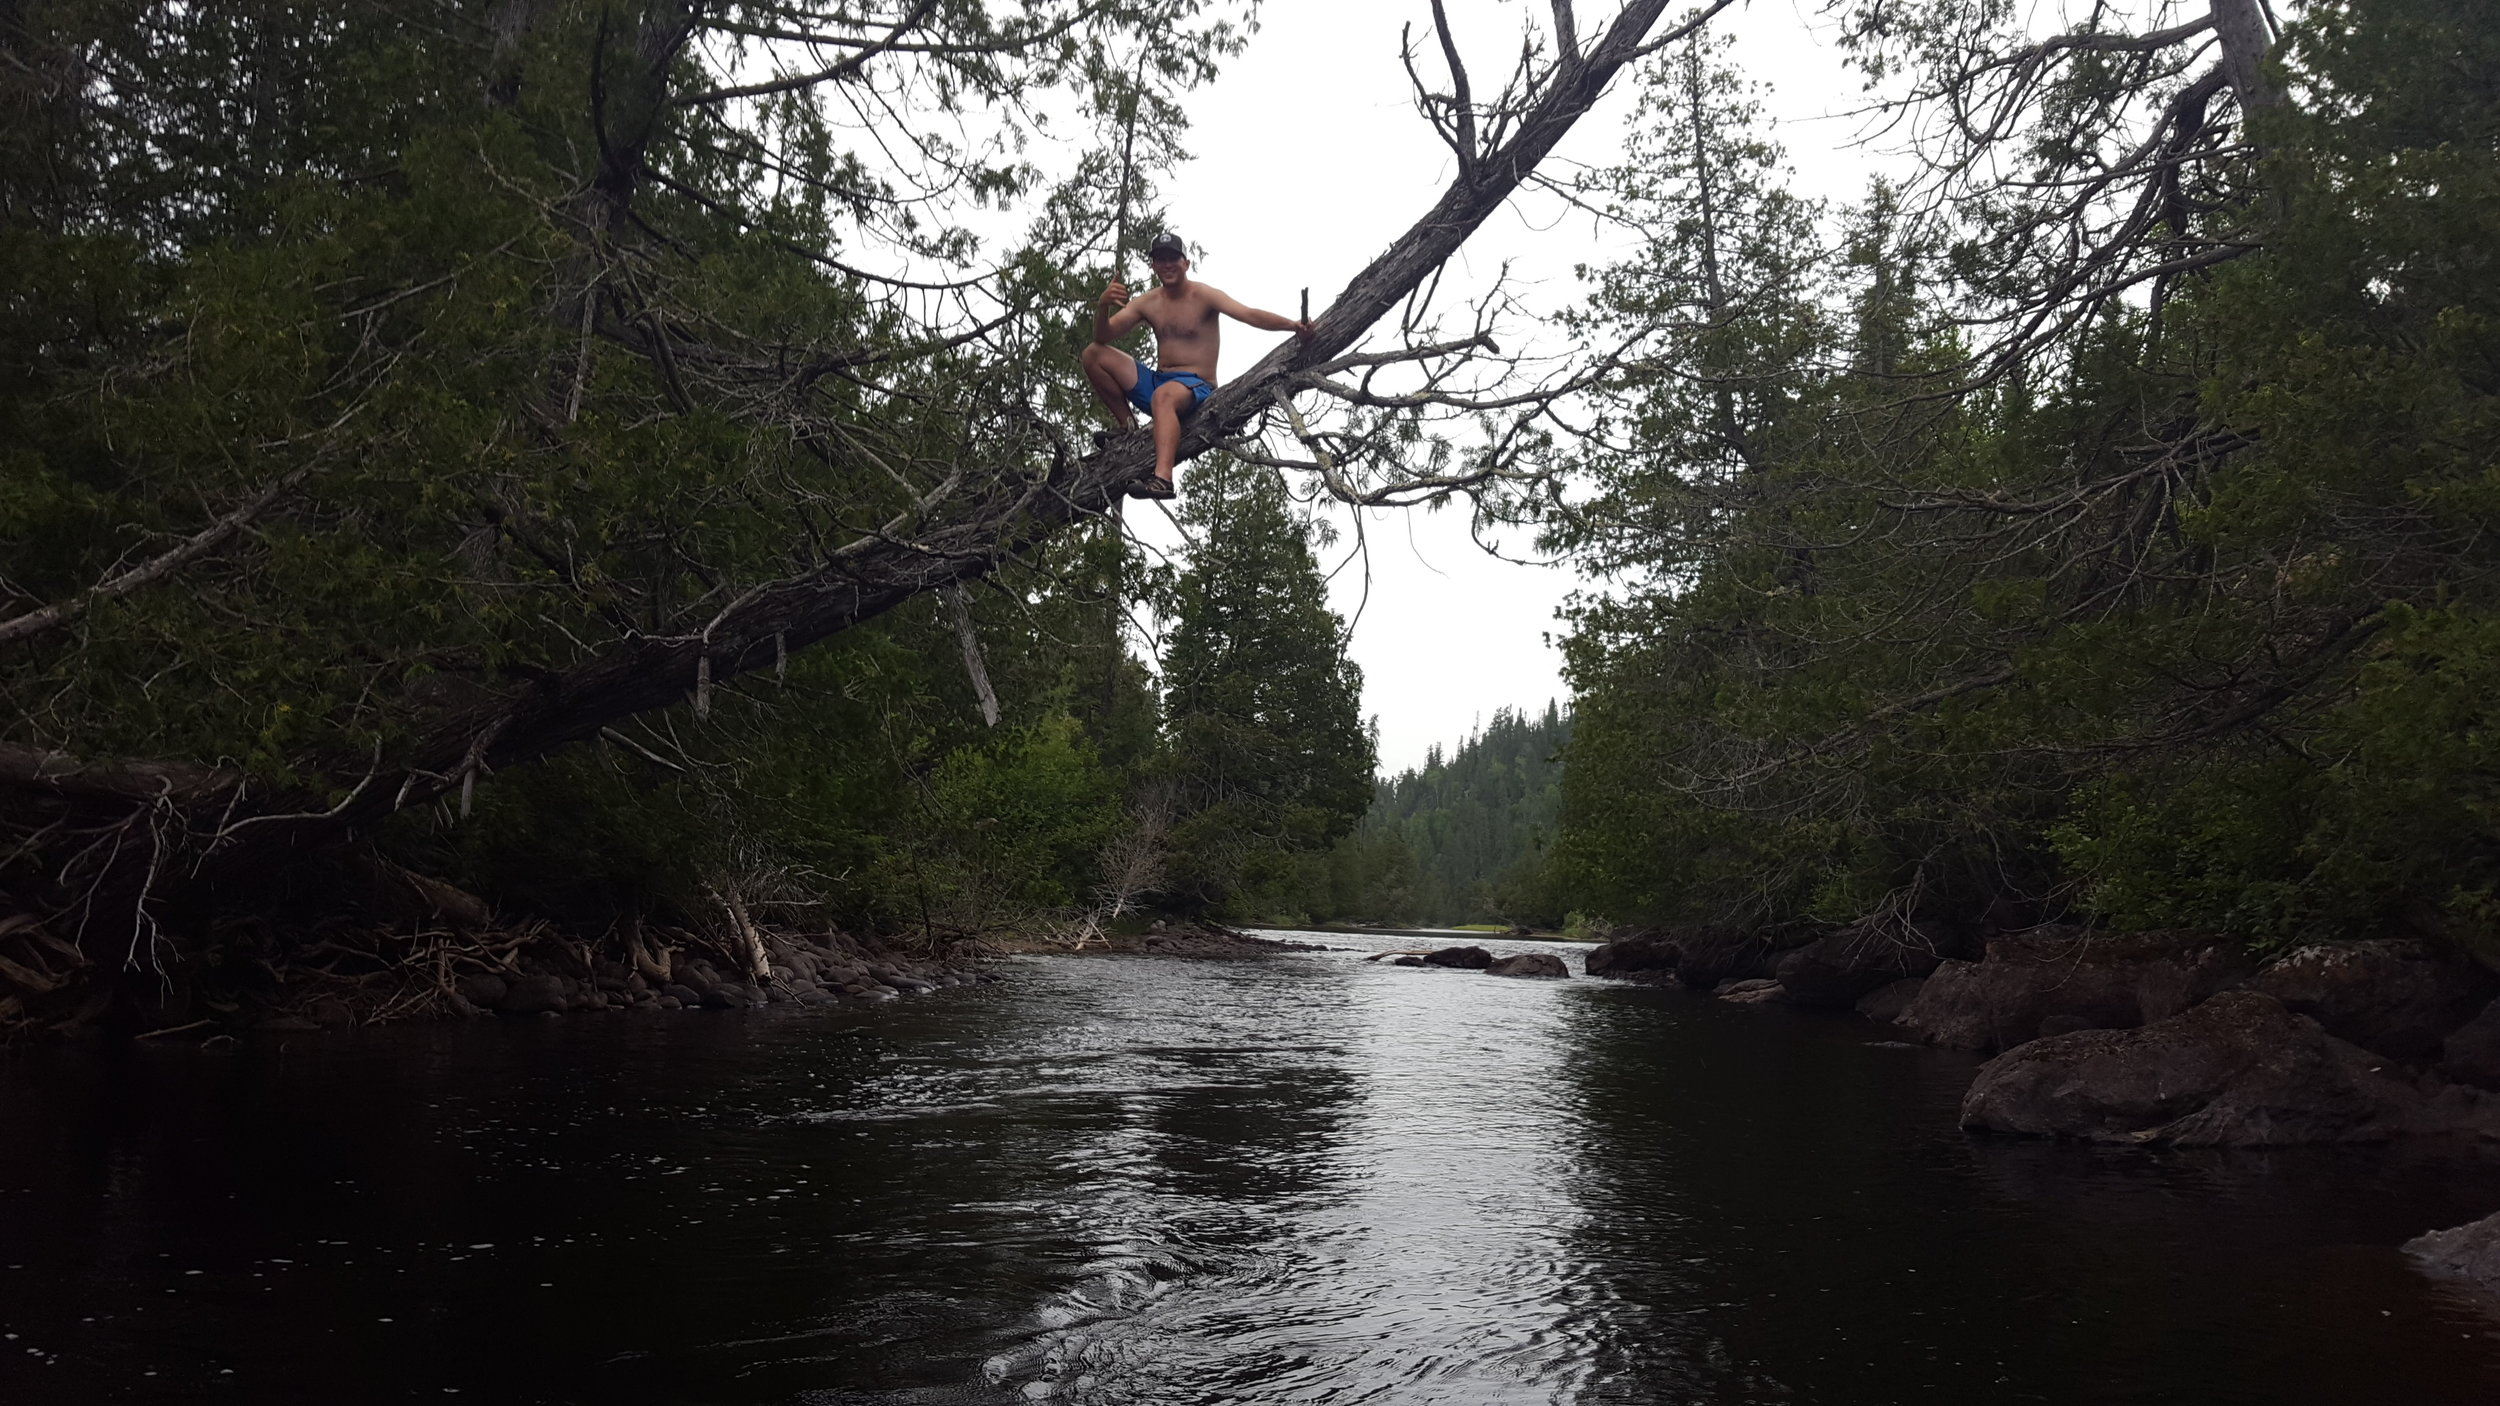 Alex climbing trees on the Steel River